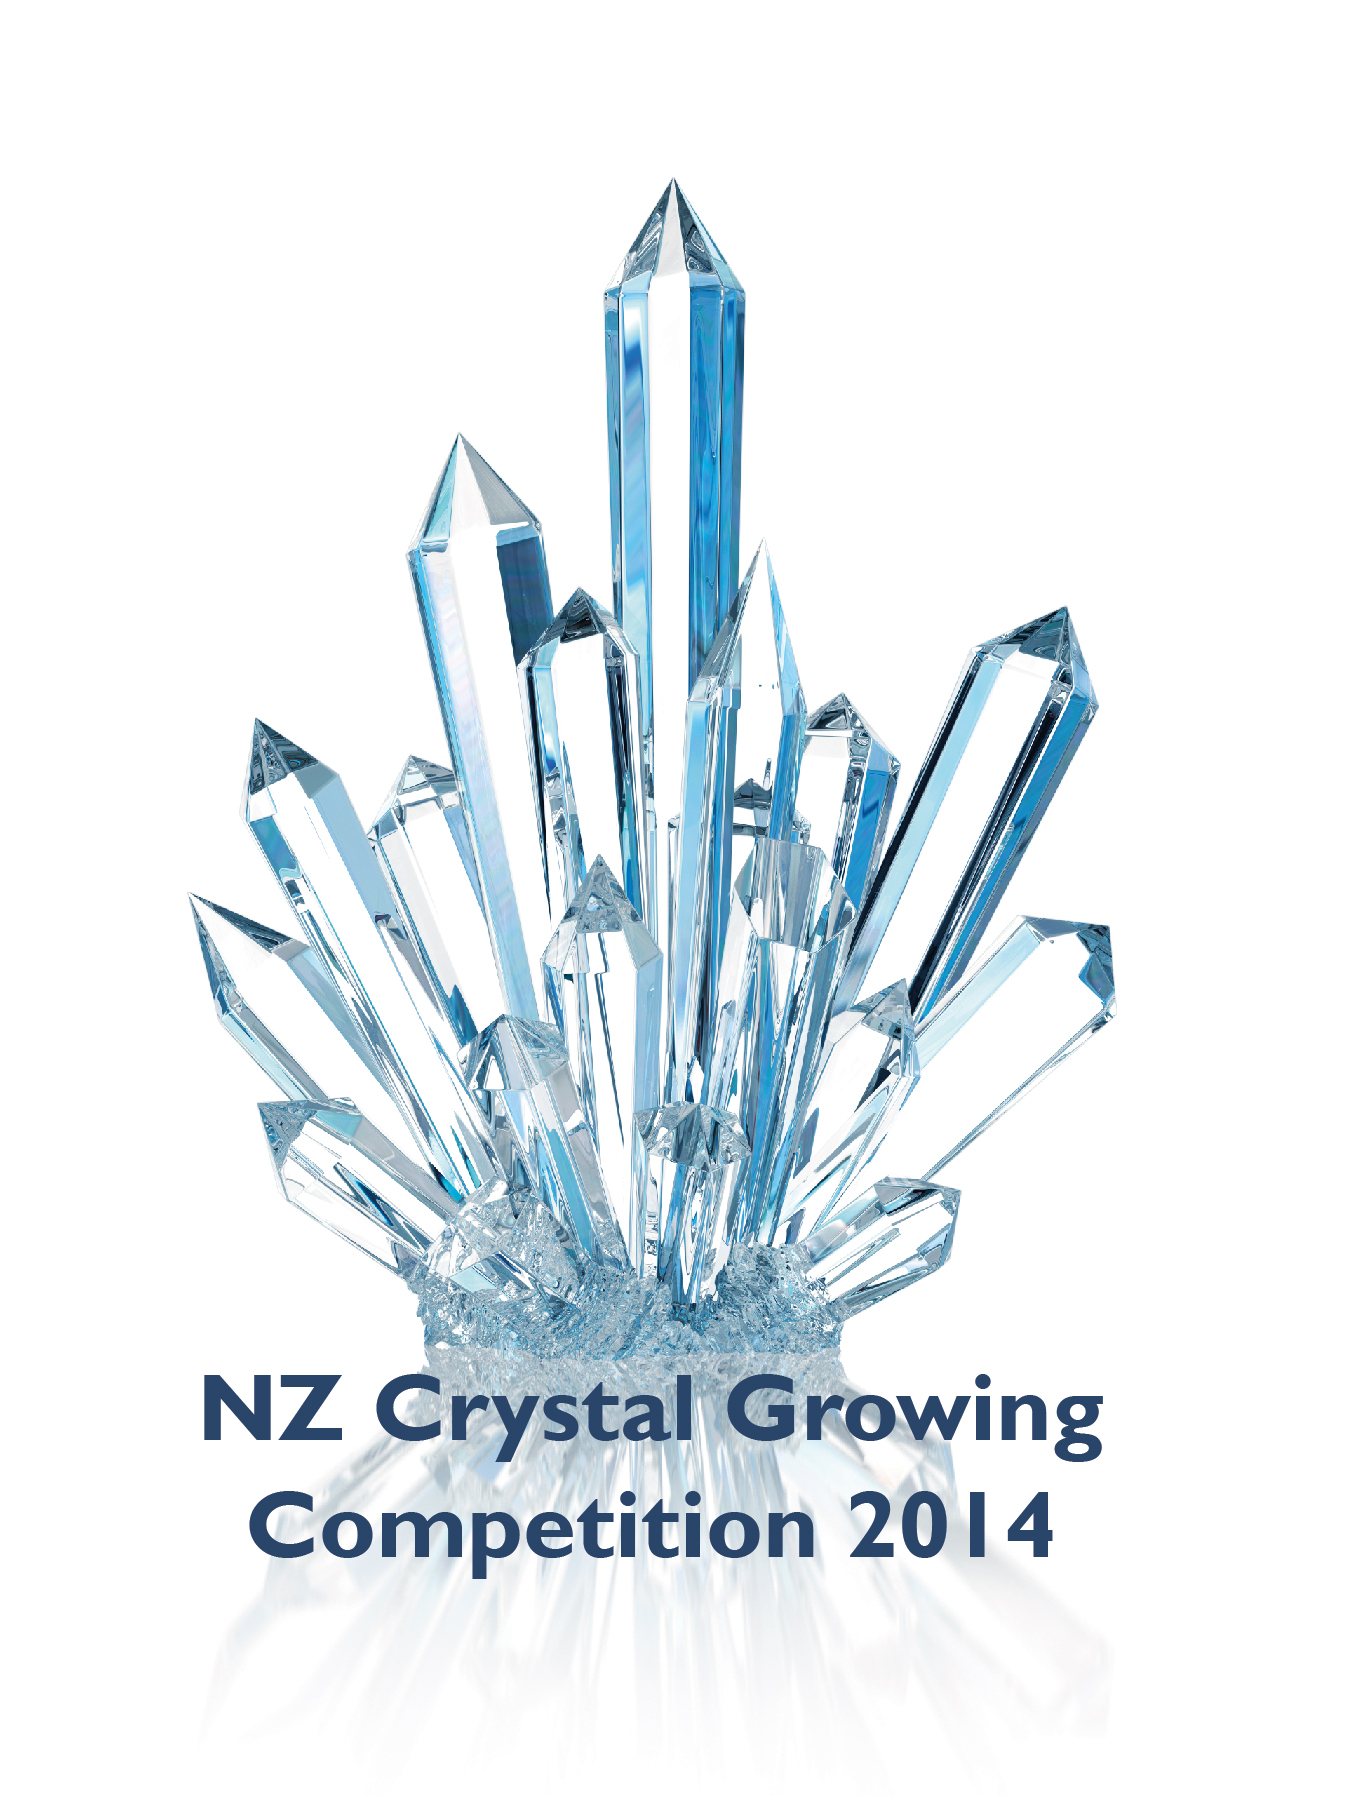 NZ Crystal Growing Competition